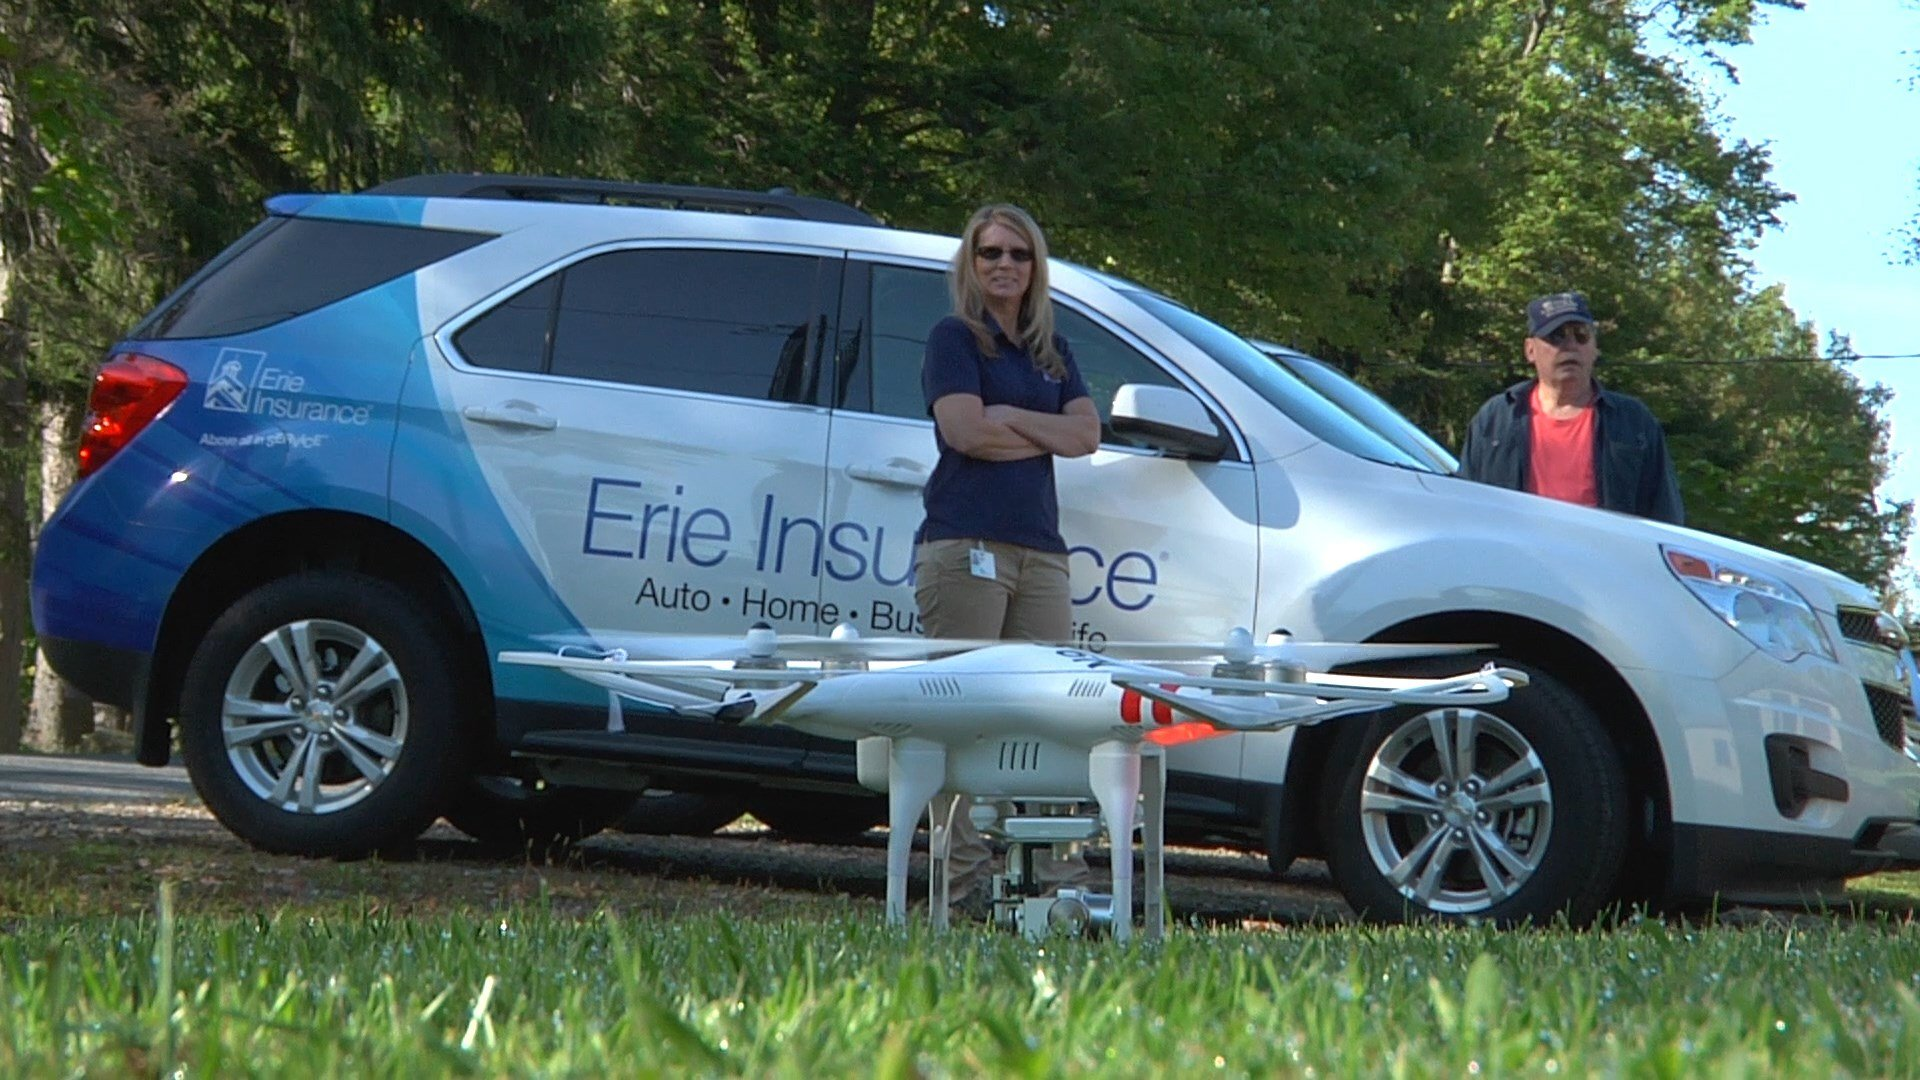 Erie Insurance To Utilize Drones  Erie News Now  Wicu. Online Business Server Frymaster Tech Support. Nursing School In Toledo Ohio. What Does Hvac Stand For Alcohol On Teenagers. University Hospitals Of Cleveland. Substance Abuse Prevention And Treatment Block Grant. Hotels Near Central World Bangkok. Moving Company Orlando Fl Hp 8440p Quickspecs. How To Put Ink In Printer Linux Recover Files